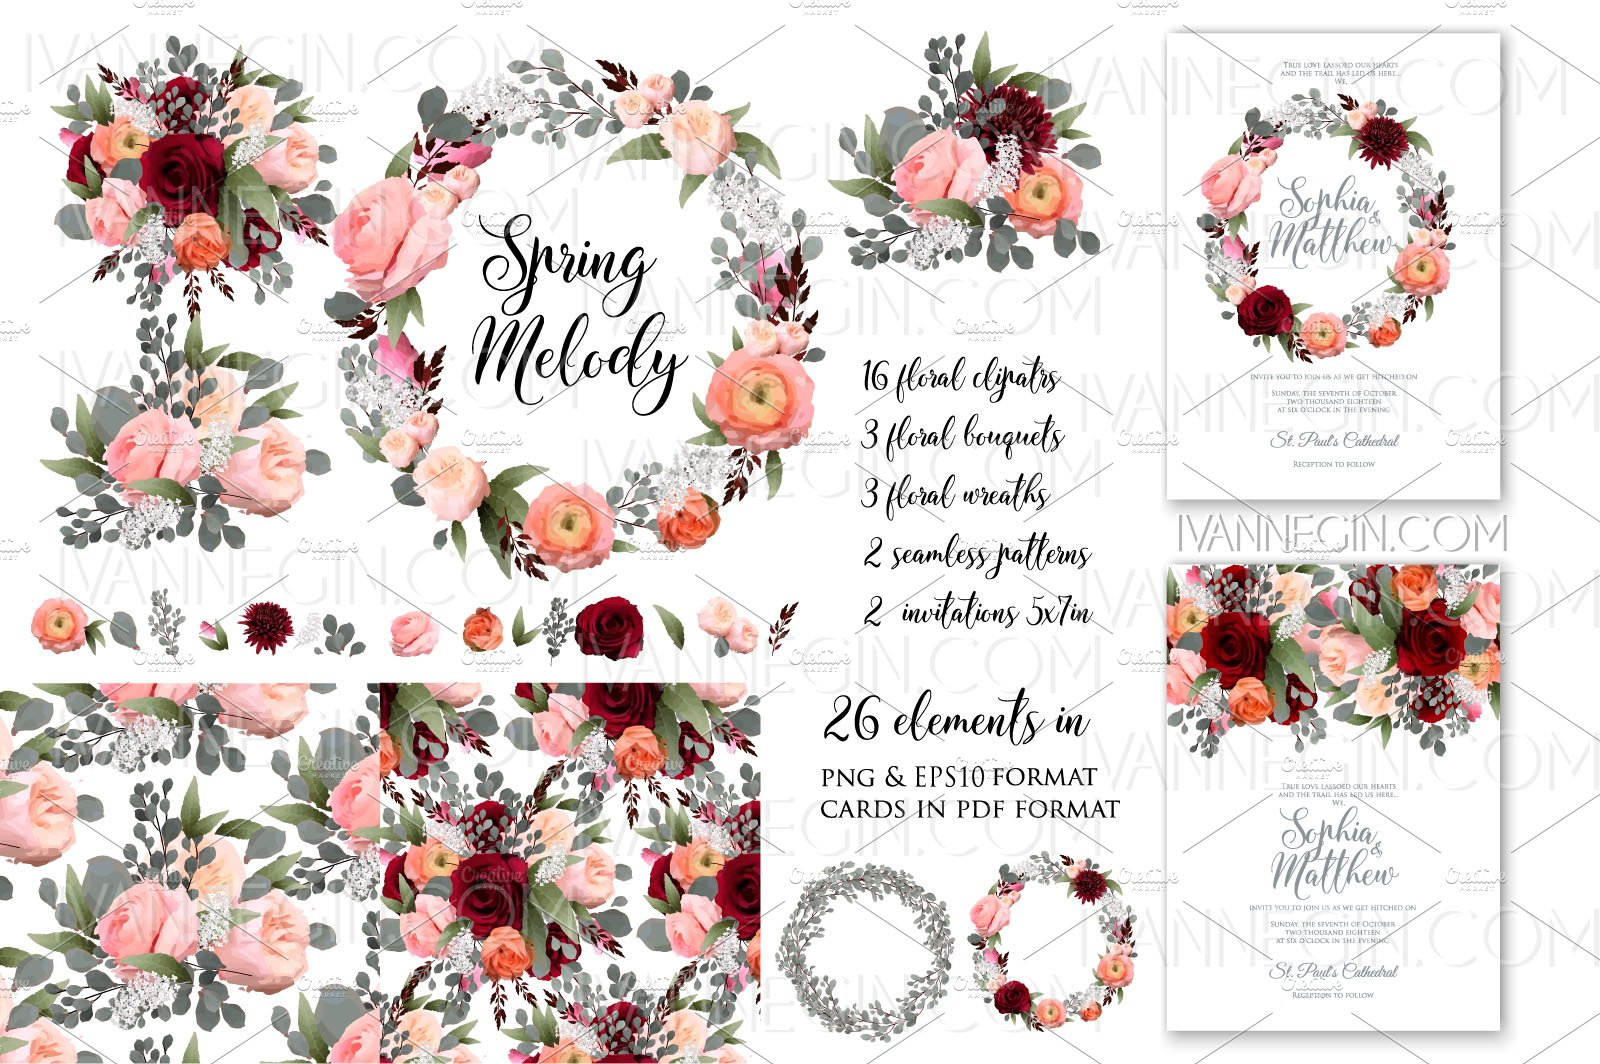 Free Clipart For Wedding Invitations: Rose Wedding Invitation Card Clipart